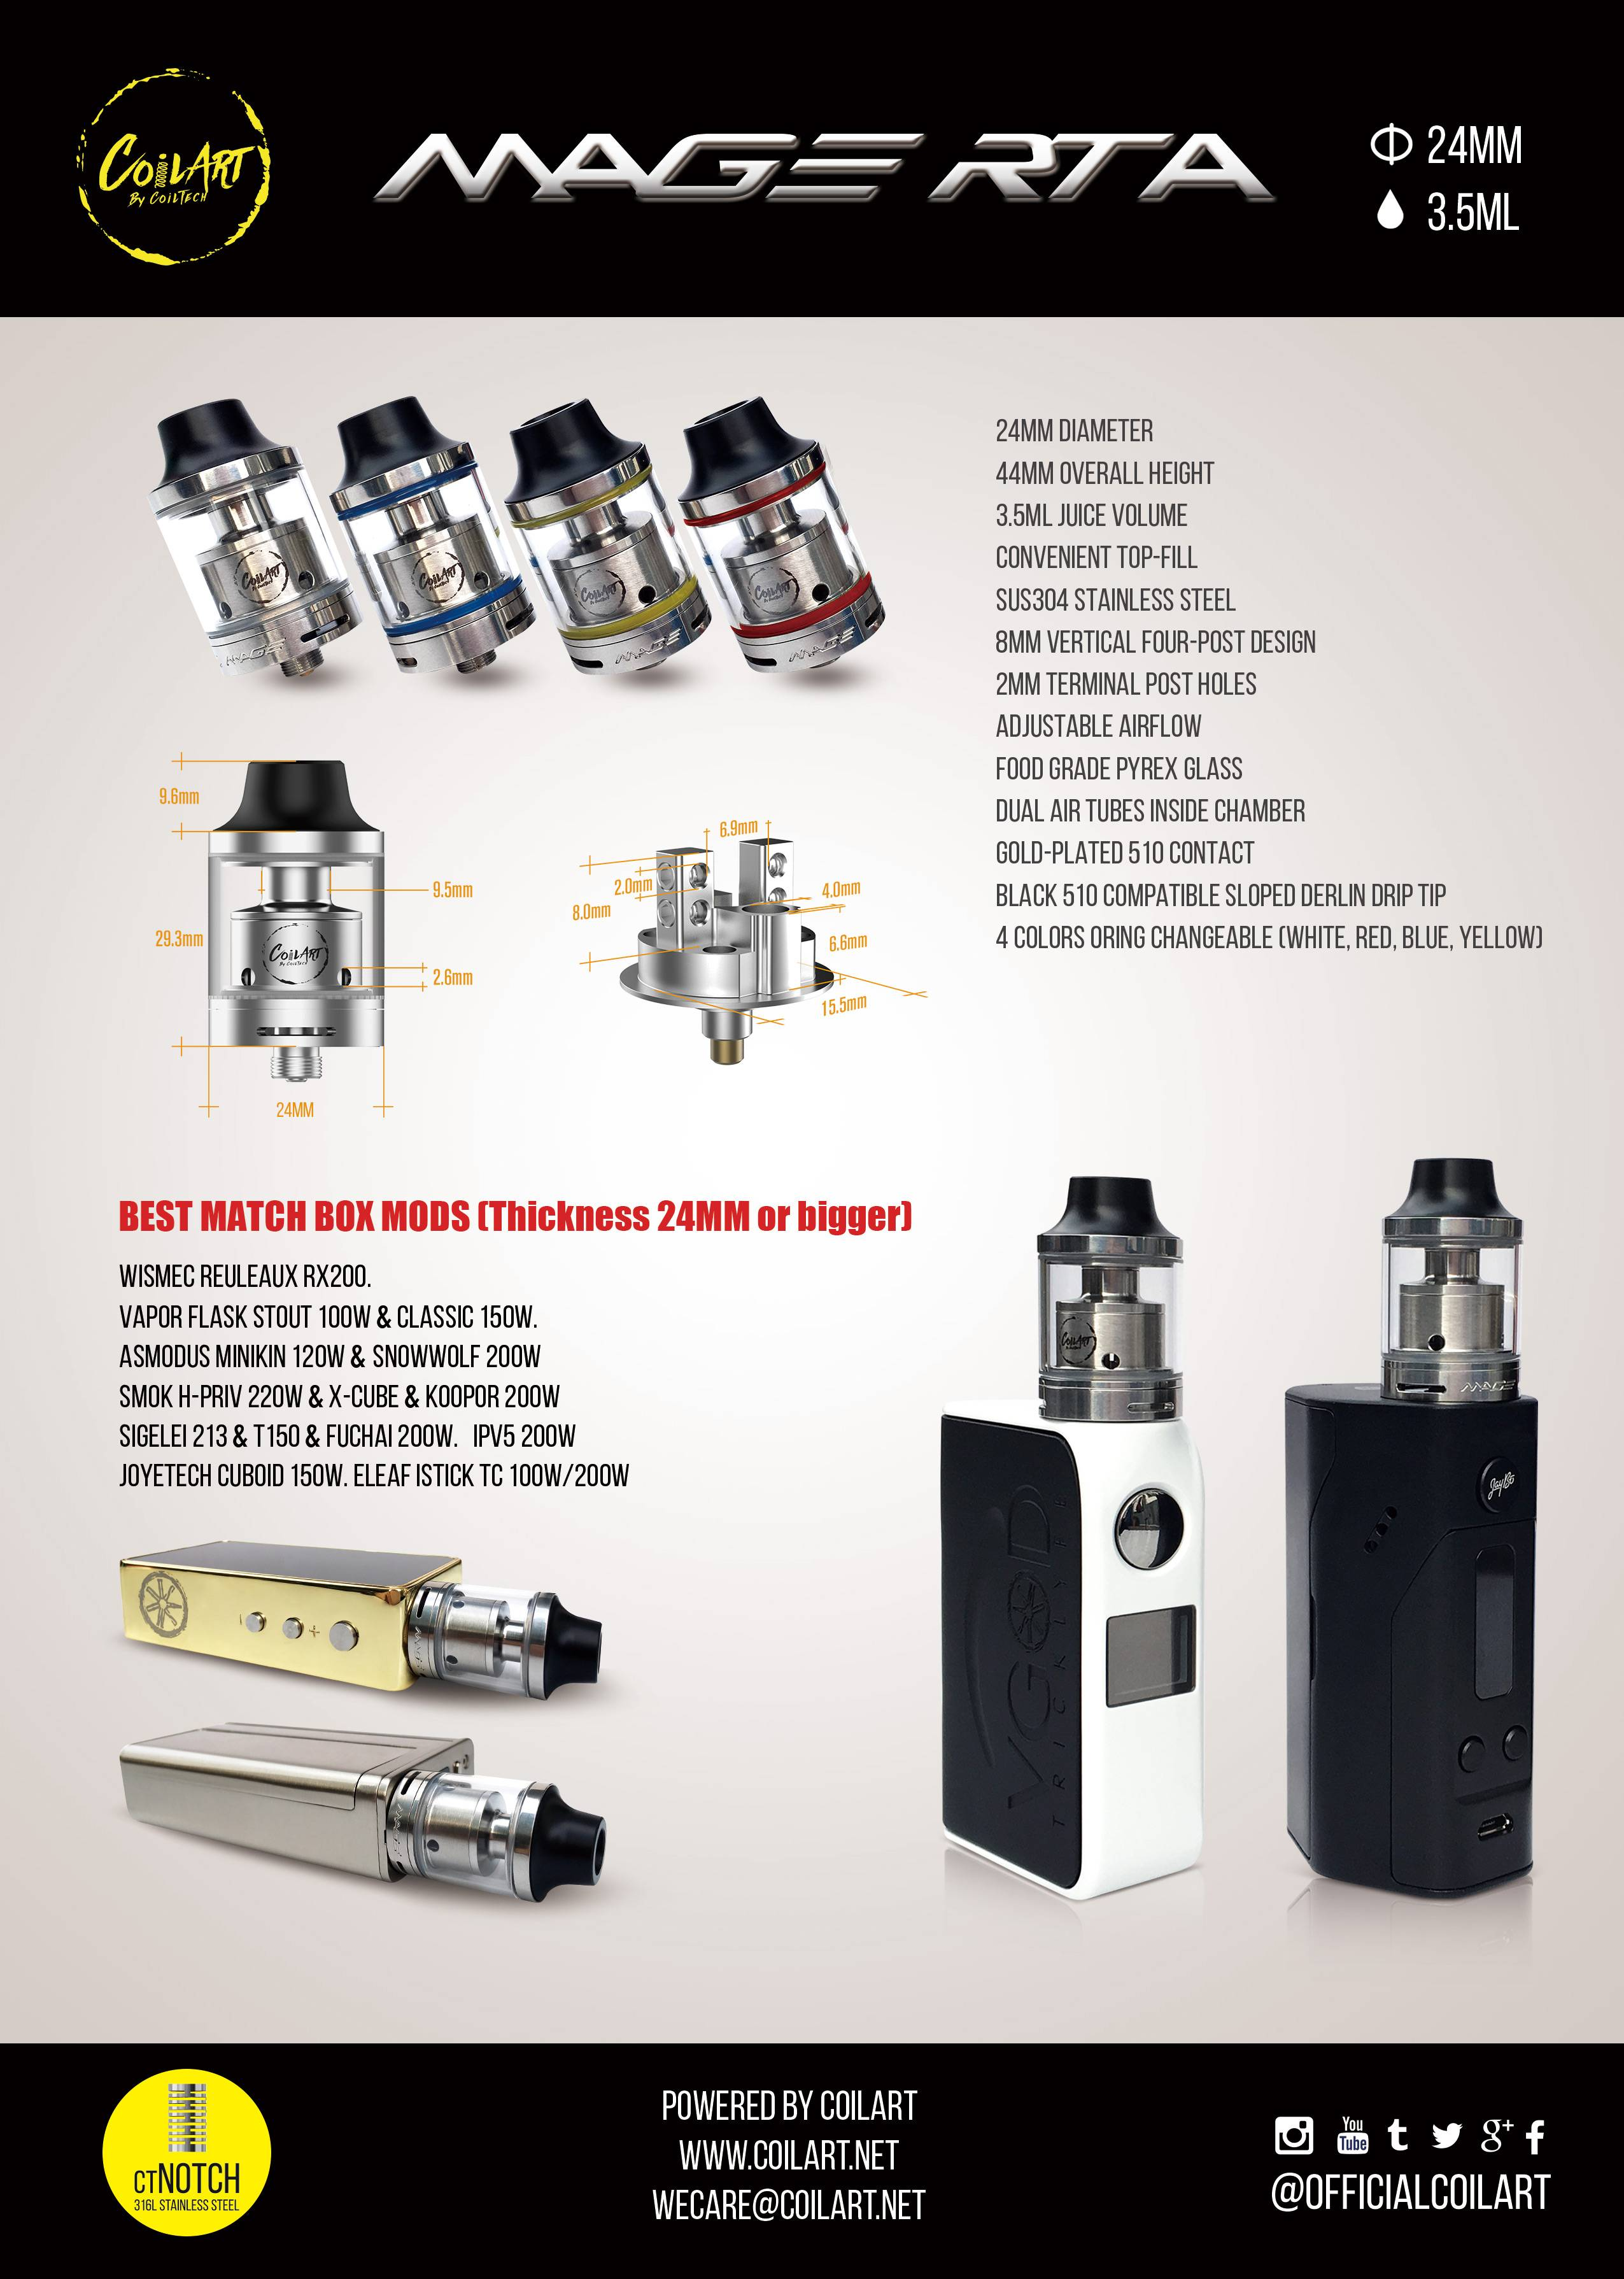 Coil Art is a trusted brand name that offers top-grade products at affordable prices. The Mage RTA is an exceptionally well performing tank atomizer that is very user-friendly and allows for effortless builds. The 3.5ml mage rta is constructed with 304 stainless steel and quality pyrex glass. Completely resistant to the acidity found in e-juice, glass tanks are much longer lasting. This beautiful top refilling rebuildable tank sits only 44mm tall from drip tip to contact pin! This makes it one of the shortest 24mm RTAs on the market! This compact rta also comes with easy to use velocity style build deck and advanced airflow controls. It is easy for you to install the clapton coils.   MAGE RTA Features and Specifications Diameter: 24mm Overall Height: 44mm 3.5ml Large Tank Capacity Convenient Top Fill System Solid 304 Stainless Steel Construction Food Grade Pyrex Glass 8mm Vertical Four-Post Design 2mm Terminal Post Holes Three (1mm x 9mm) Ajdustable Airflow Slots Four (2.5mm) Wicking Ports Dual 4mm Airflow Chimneys Gold Plated 510 Contact Pin Black 510 Compatible Sloped Delrin Drip Tip 4 Sets of Colored O-rings for Customization  MAGE RTA Comes With 1 x MAGE RTA by CoilArt 1 x Pyrex Glass Replacement 3 x Extra Sets of Colors of O-Rings 1 x Extra Set of Contact Screws